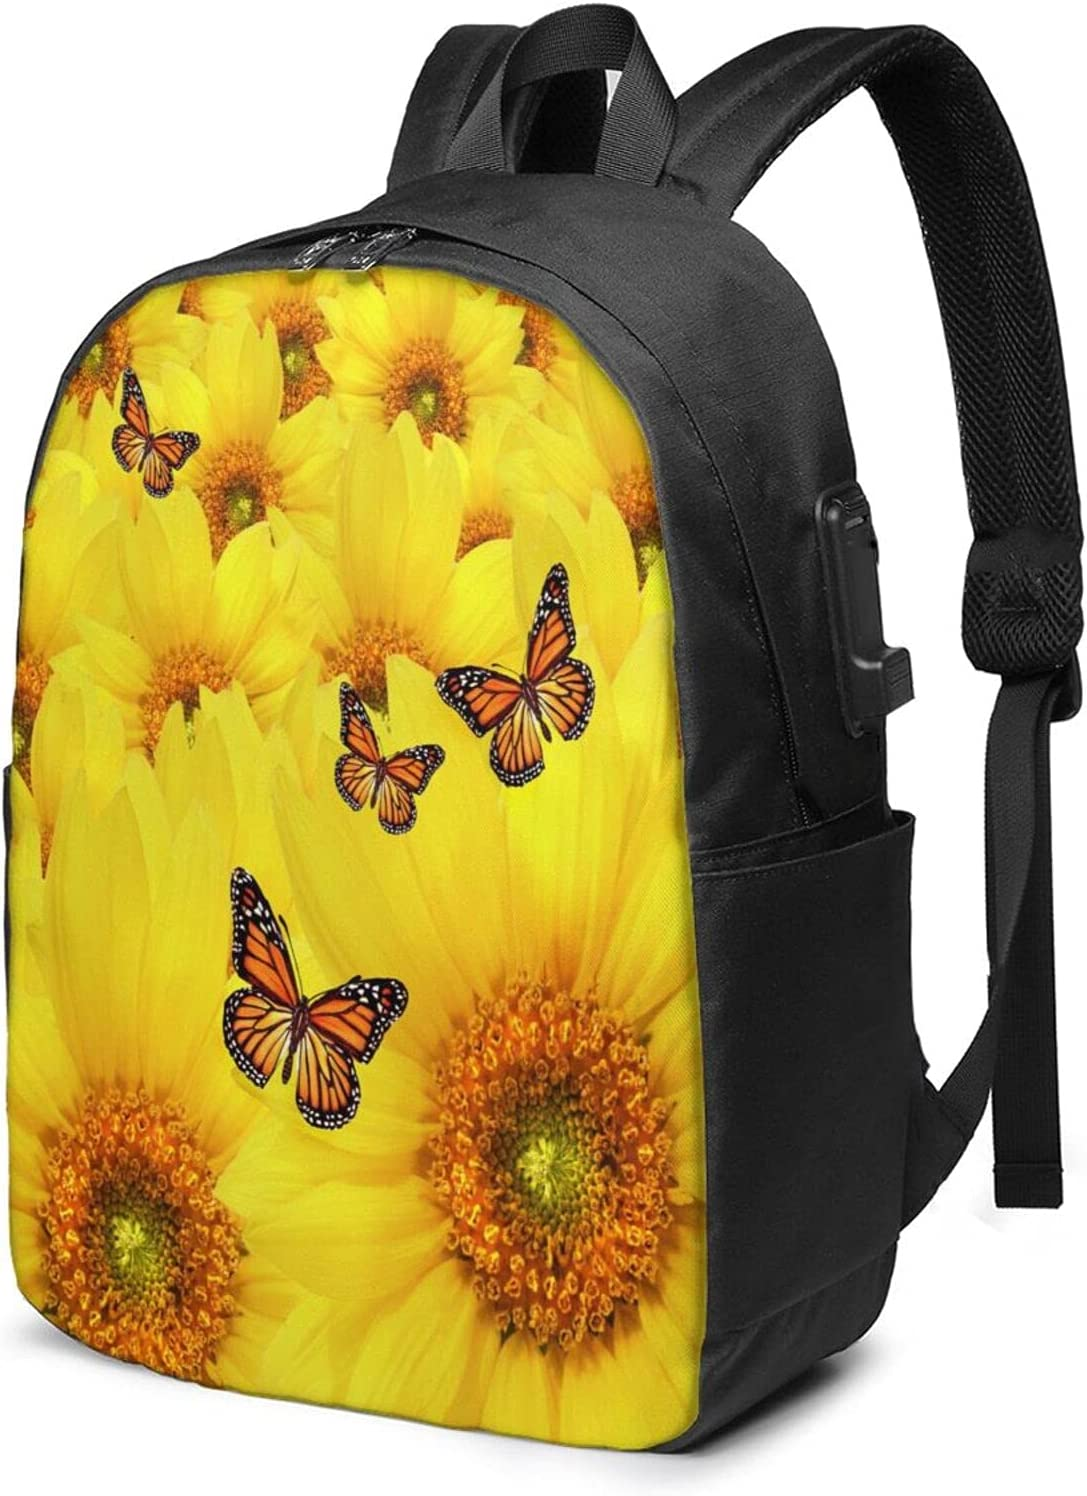 Yellow Max 44% OFF Sunflowers Laptop Backpack For with Daypack Adult Usb security